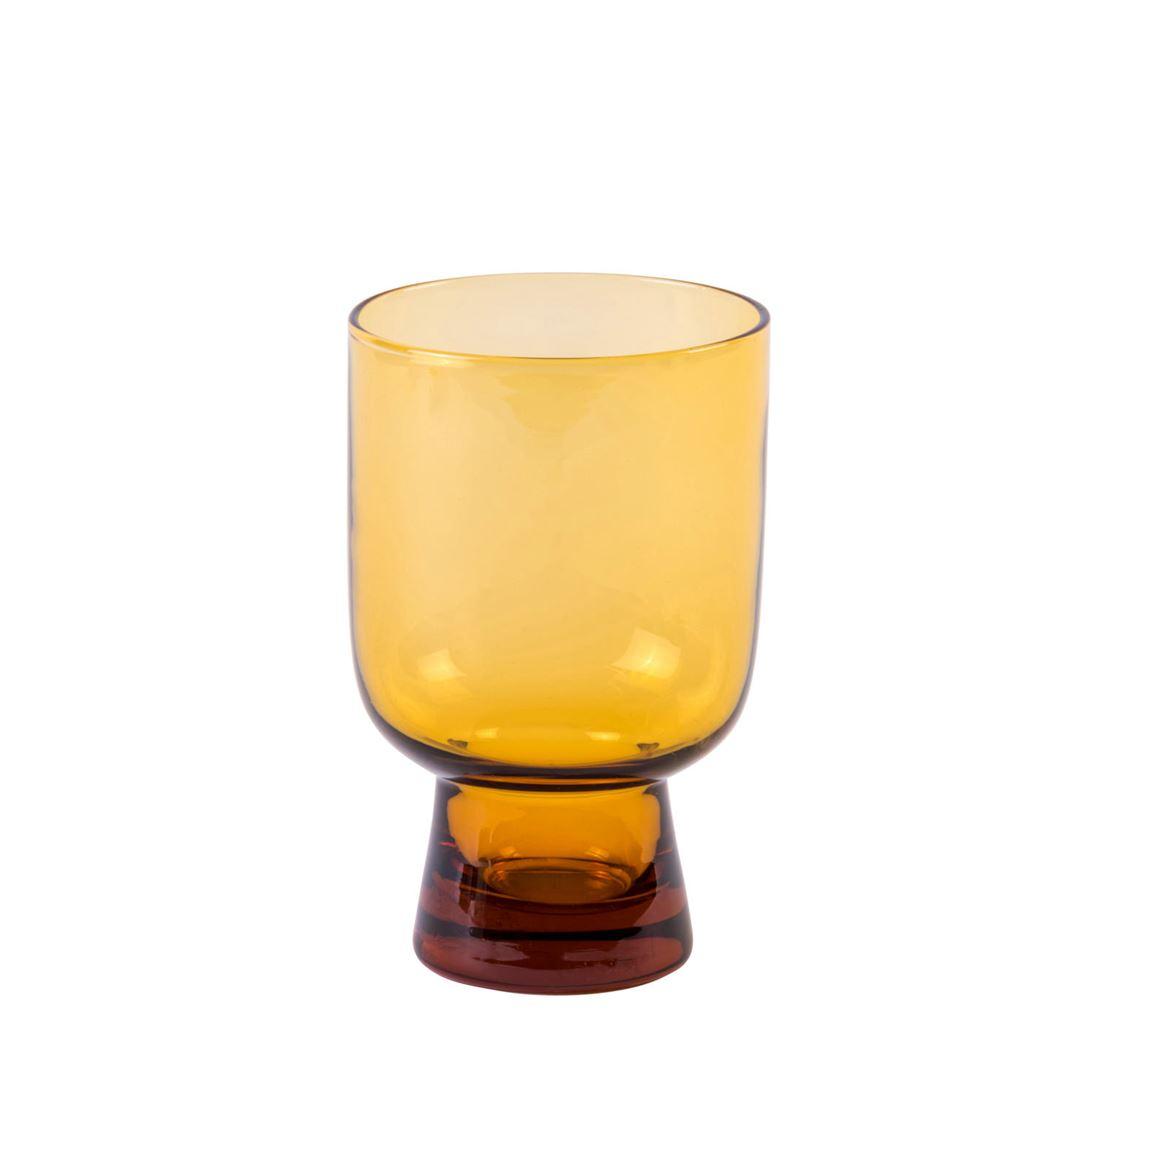 FINESSE AMBER Verre orange H 13,5 cm; Ø 9 cm_finesse-amber-verre-orange-h-13,5-cm;-ø-9-cm